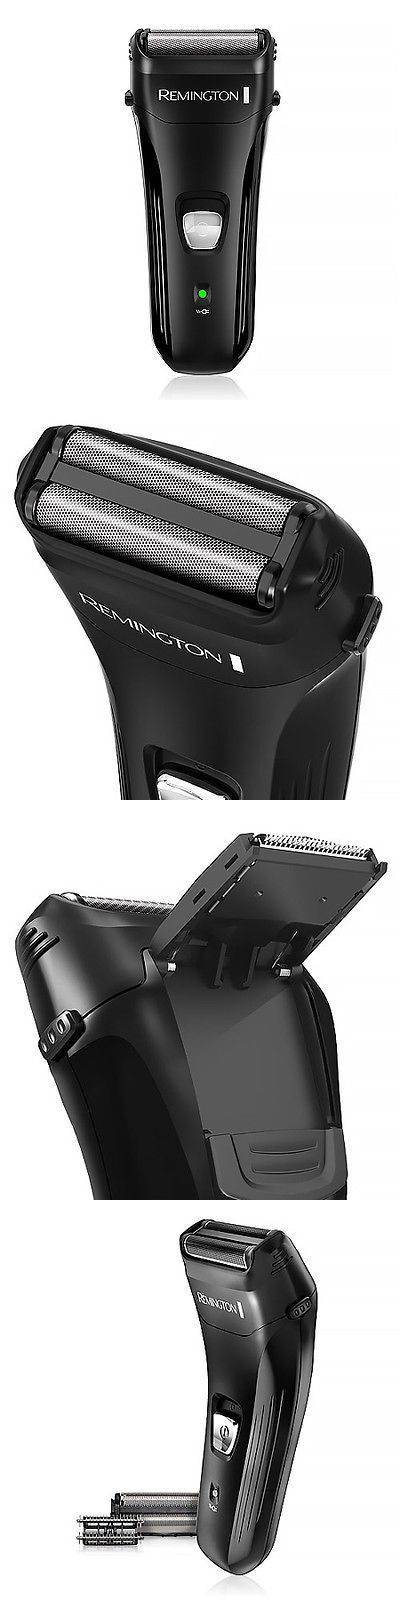 Shaver Parts and Accessories: Remington F2-3800 Men S F2 Series Foil Shaver Wet Dry And Washable New -> BUY IT NOW ONLY: $49.98 on eBay!